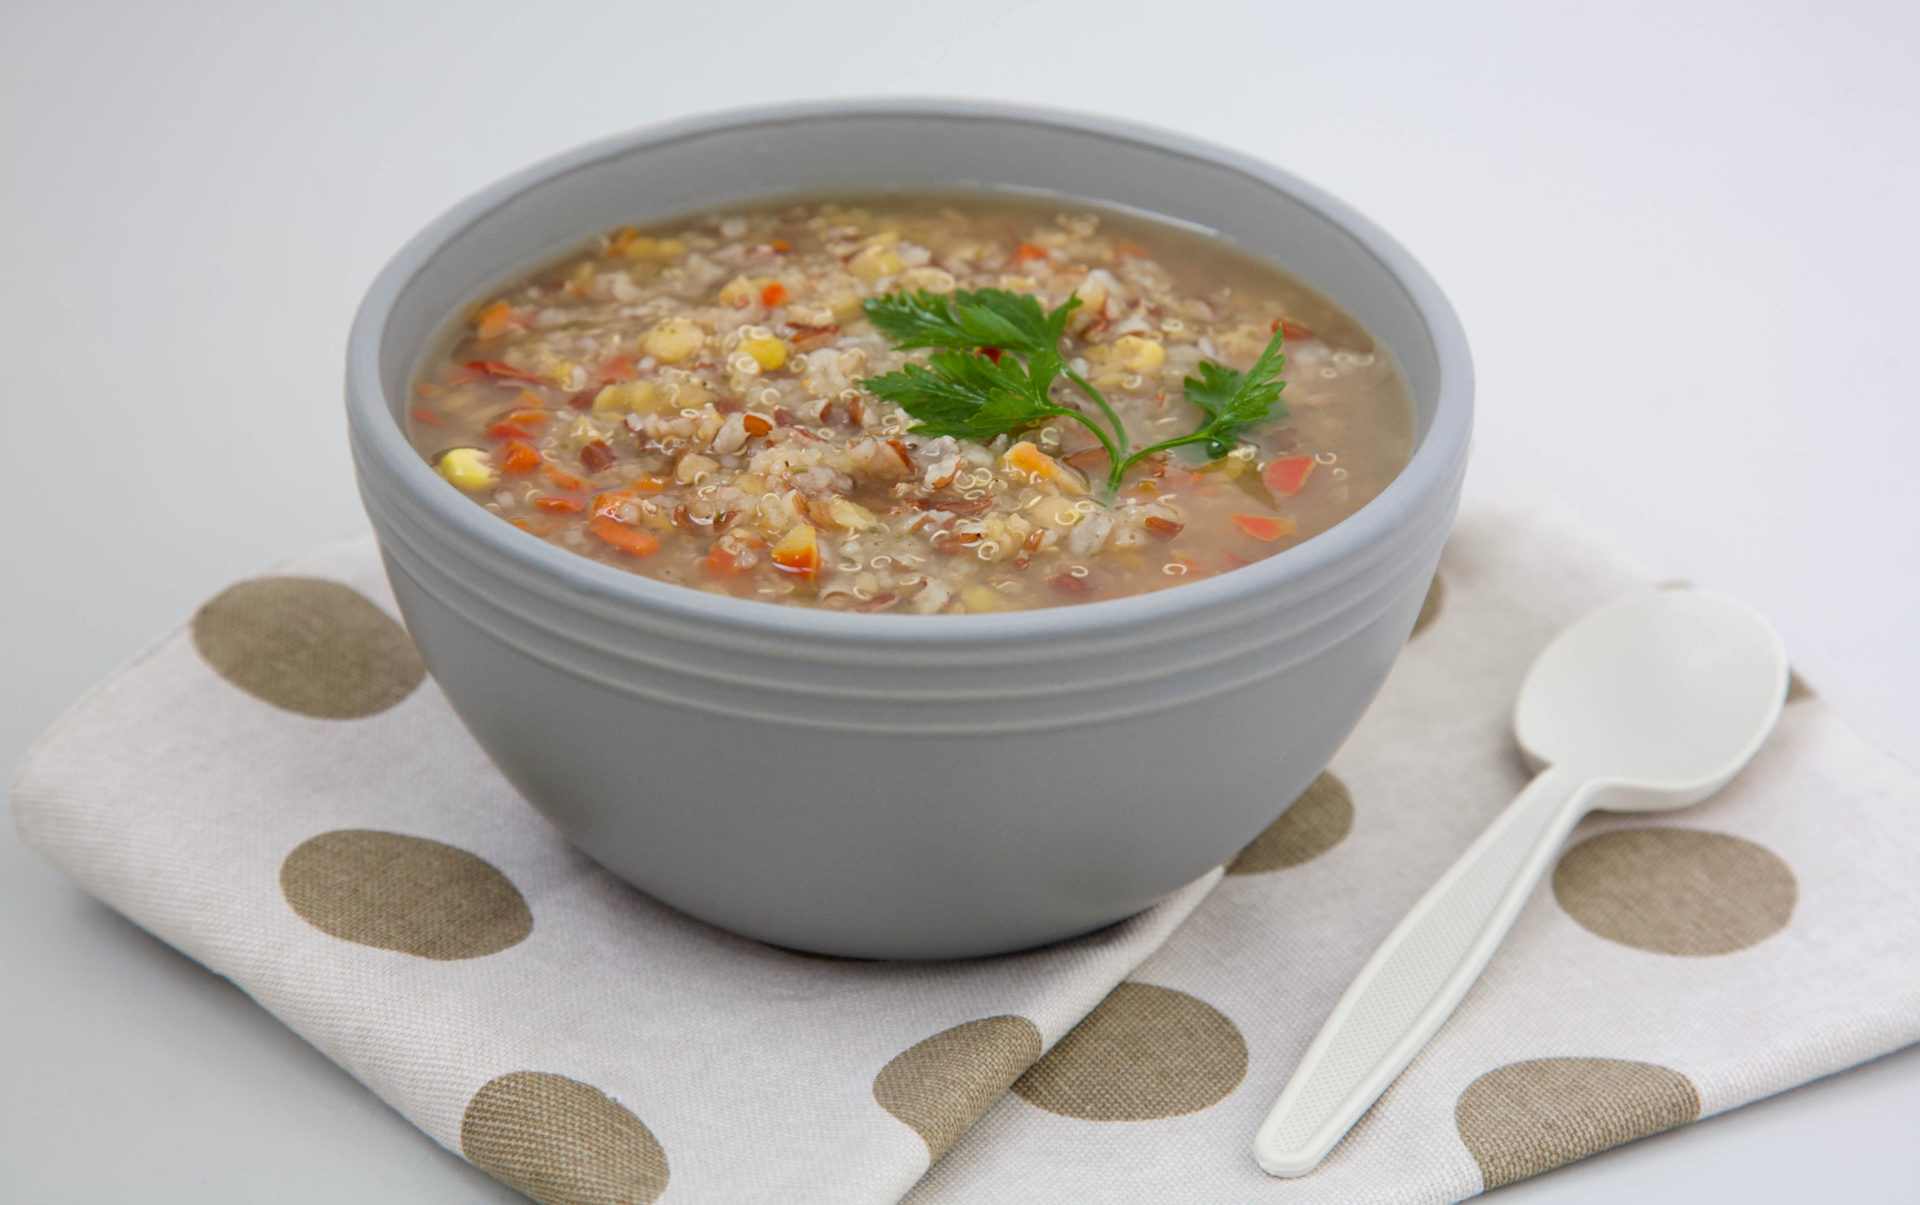 Peruvian,Quinoa,Soup,With,Red,Rice,And,Lentils,In,A